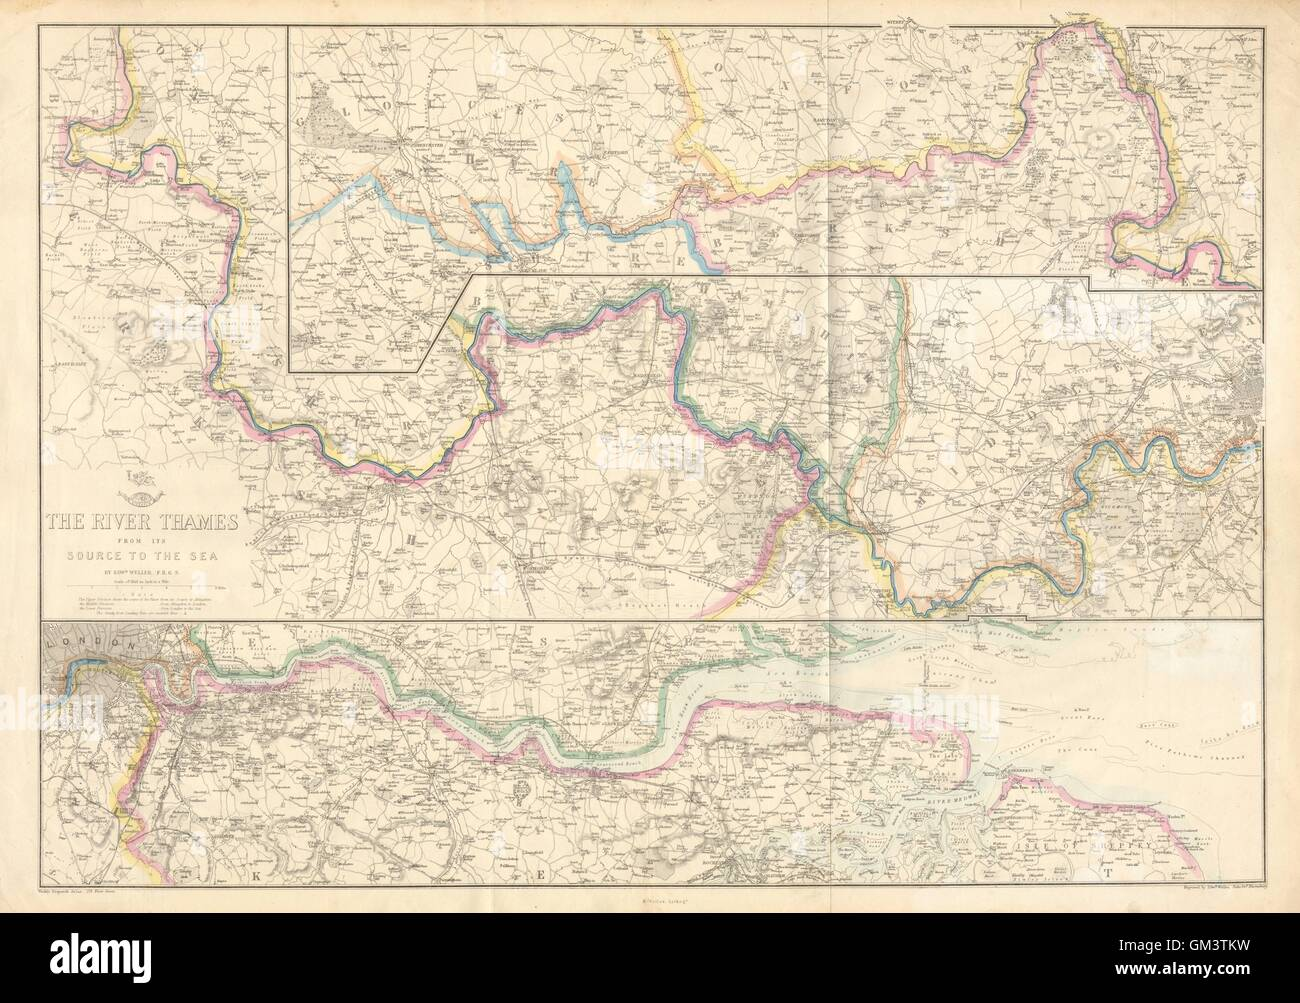 'THE RIVER THAMES FROM ITS SOURCE TO THE SEA'. Thames Valley. WELLER, c1863 map - Stock Image